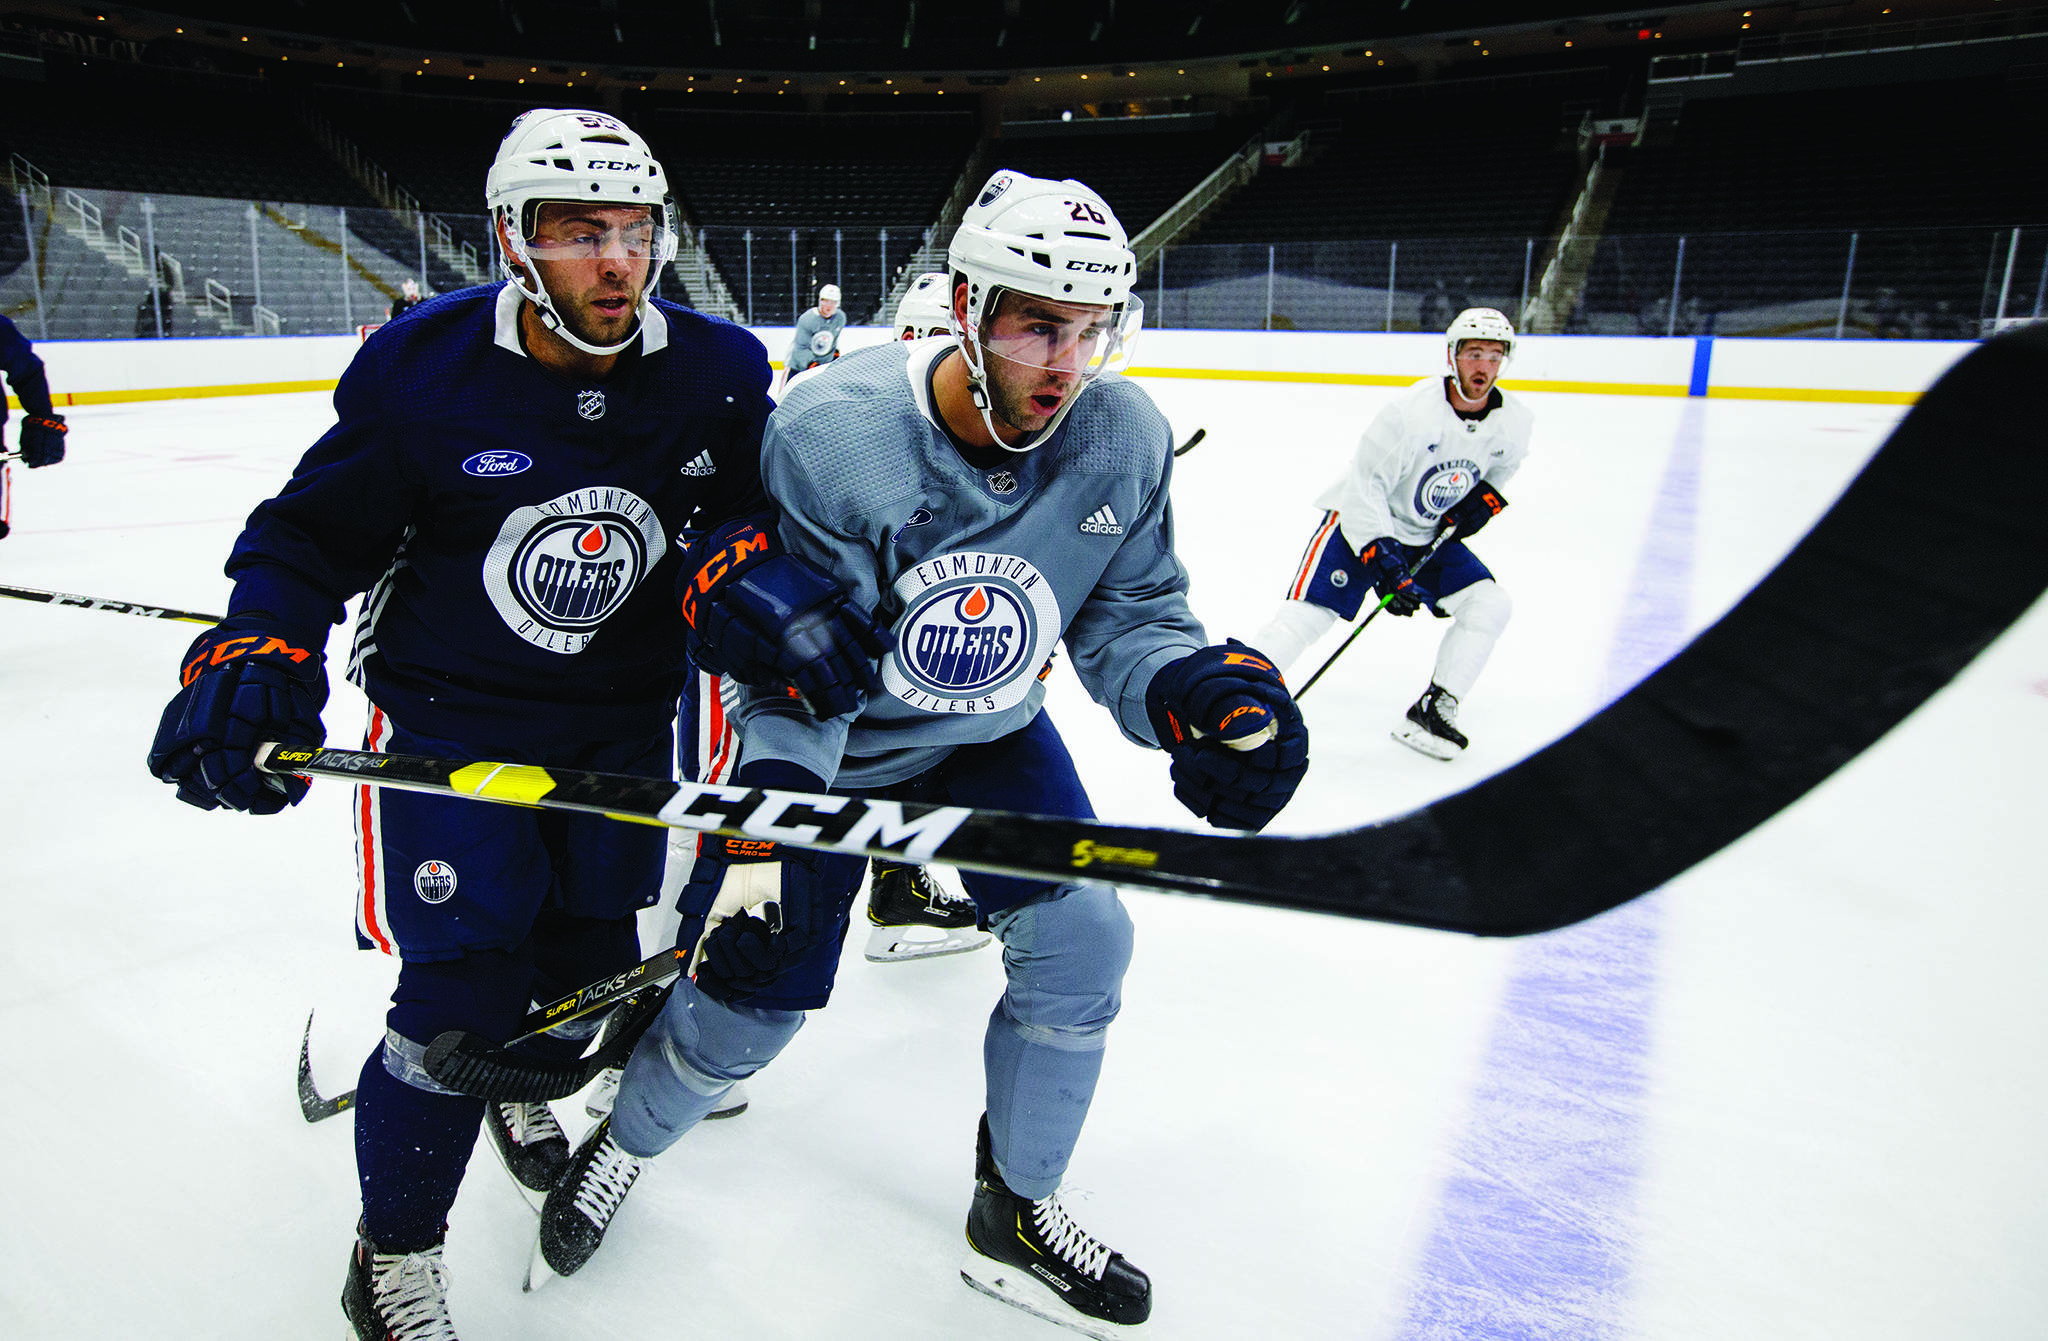 Edmonton Oilers Luke Esposito (55) and Brandon Manning (26), right, battle for the puck during training camp in Edmonton on Friday, Sept. 13, 2019. THE CANADIAN PRESS/Jason Franson